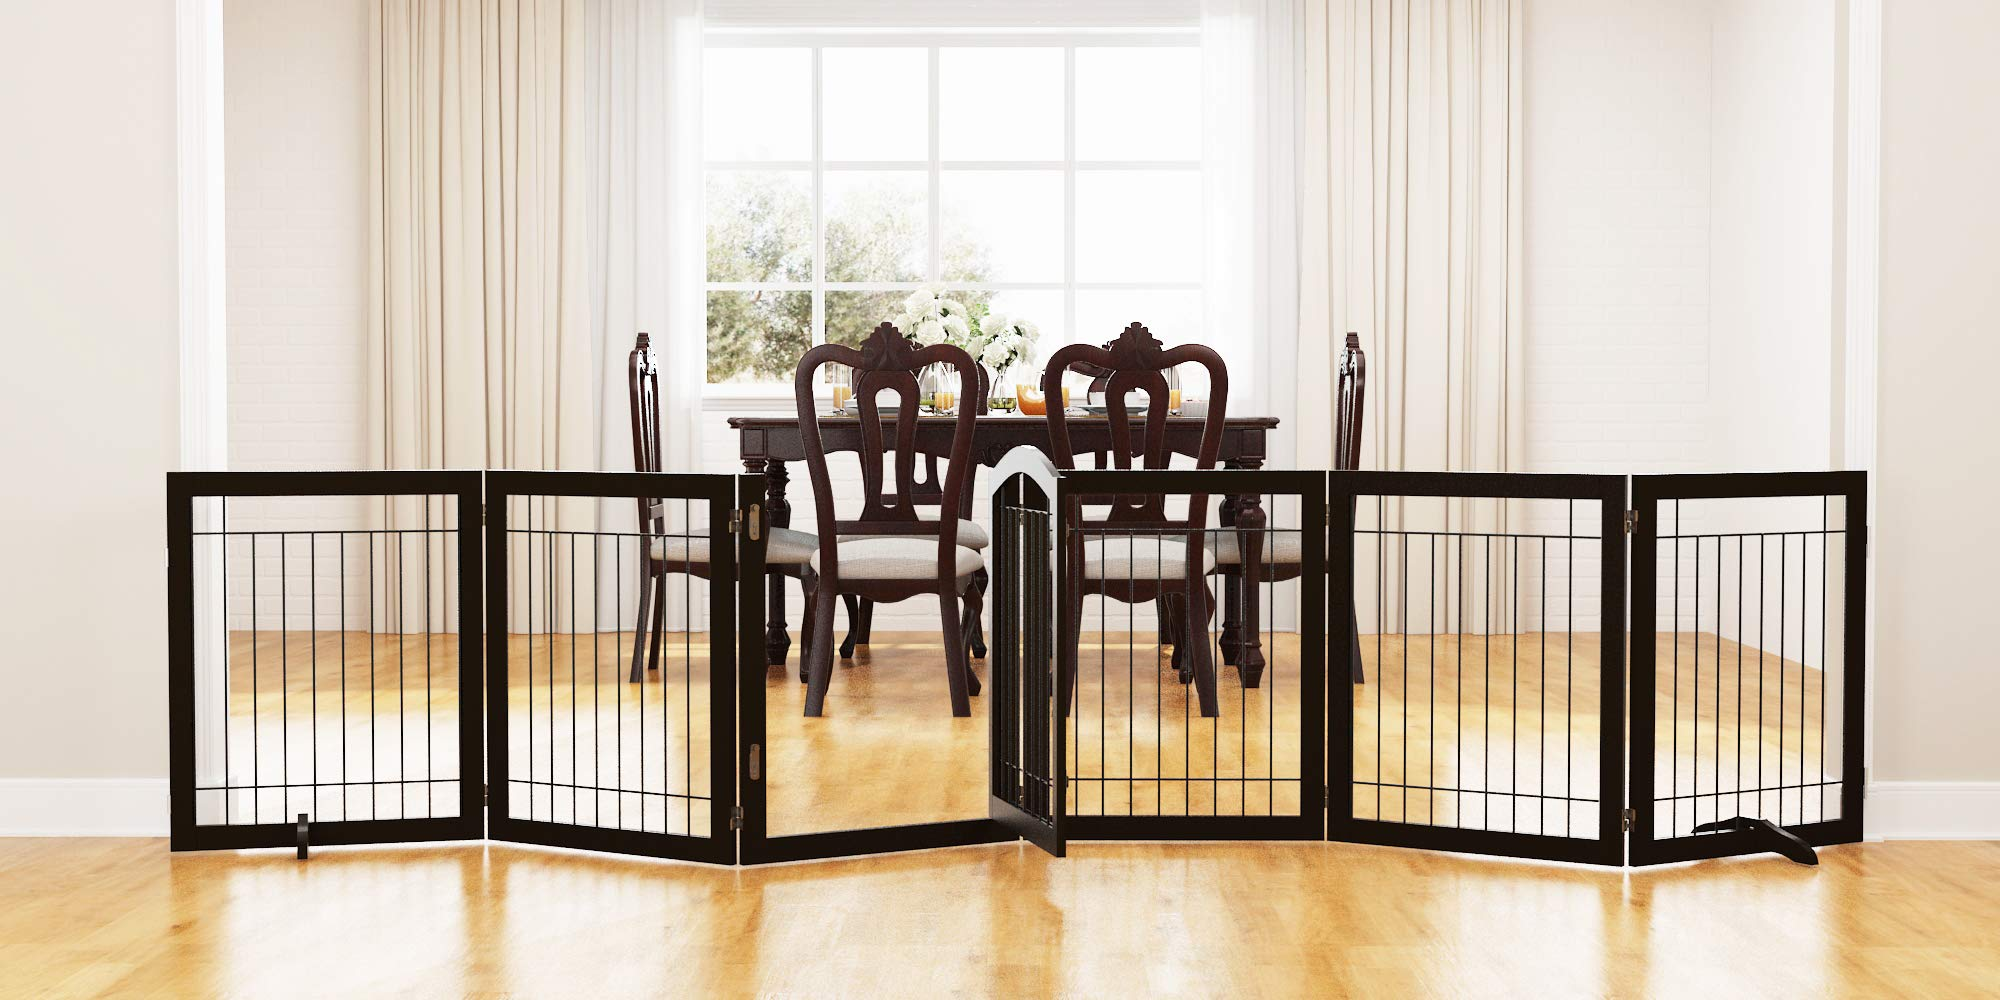 PAWLAND 144-inch Extra Wide 30-inches Tall Dog gate with Door Walk Through, Freestanding Wire Pet Gate for The House, Doorway, Stairs, Pet Puppy Safety Fence, Support Feet Included, Espresso,6 Panels by PAWLAND